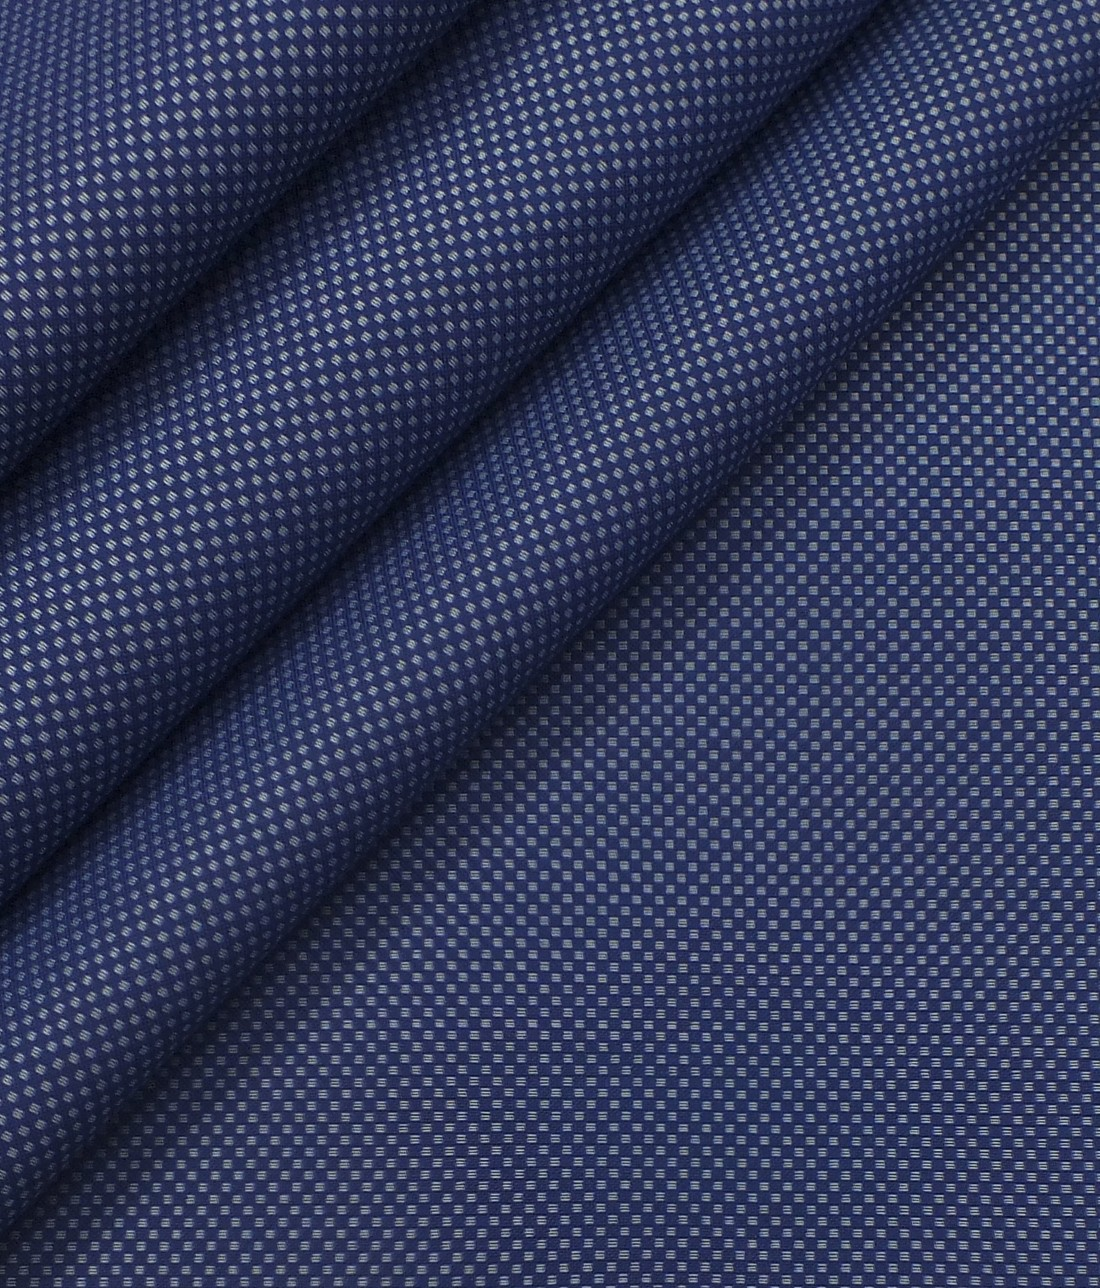 e73cb8b3bfe Raymond Light Grey Structured Trouser Fabric With Exquisite Royal Blue  Structured Shirt Fabric (Unstitched)